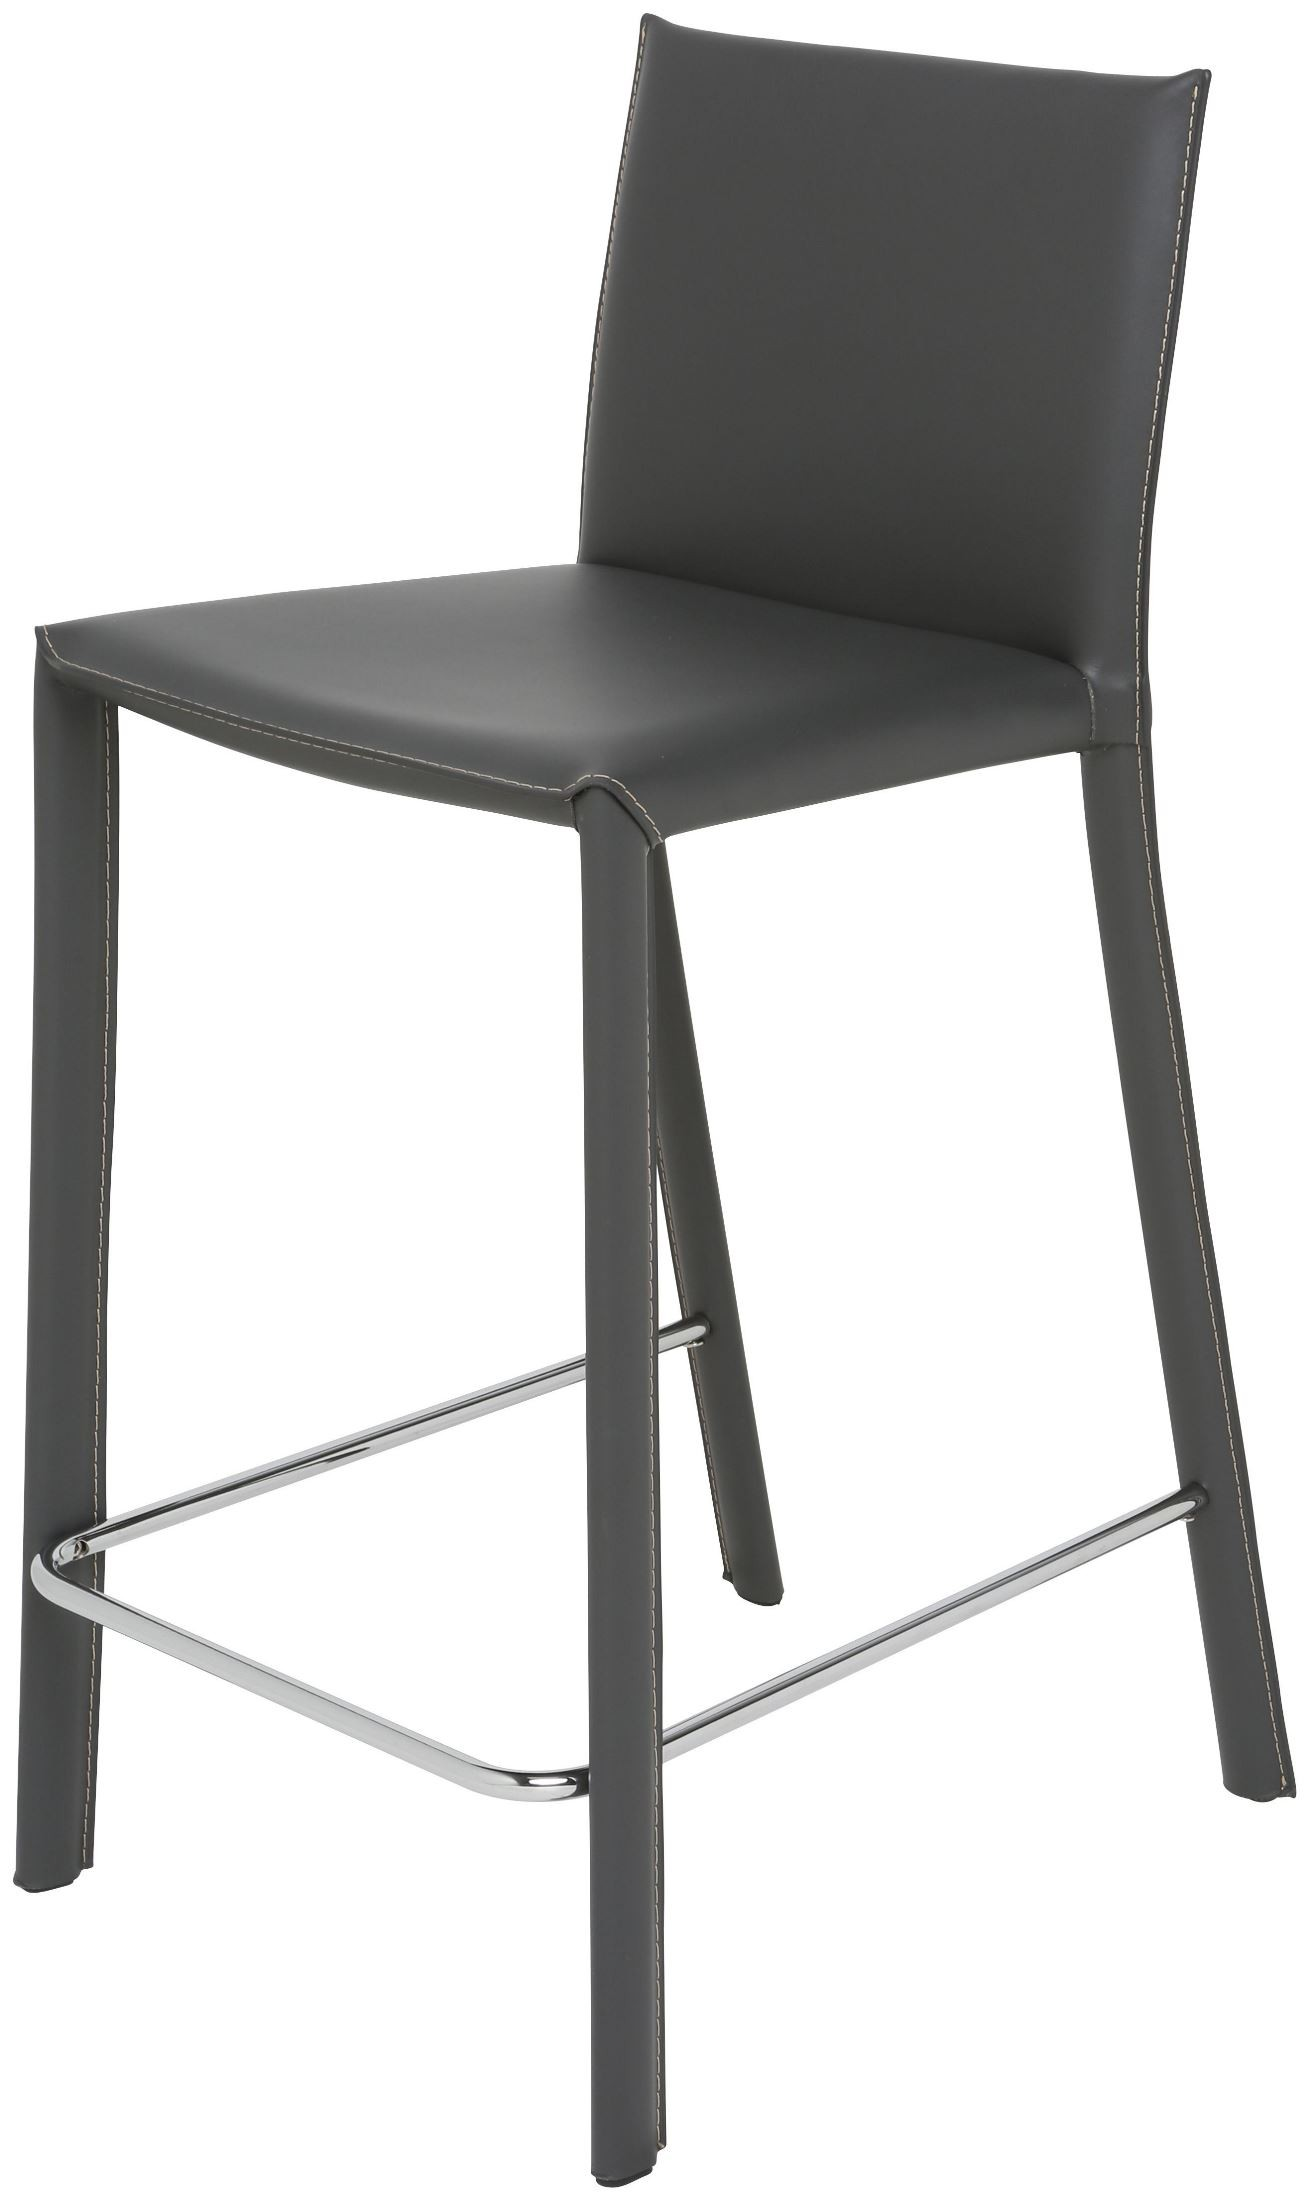 Bridget Grey Leather Counter Stool From Nuevo Coleman